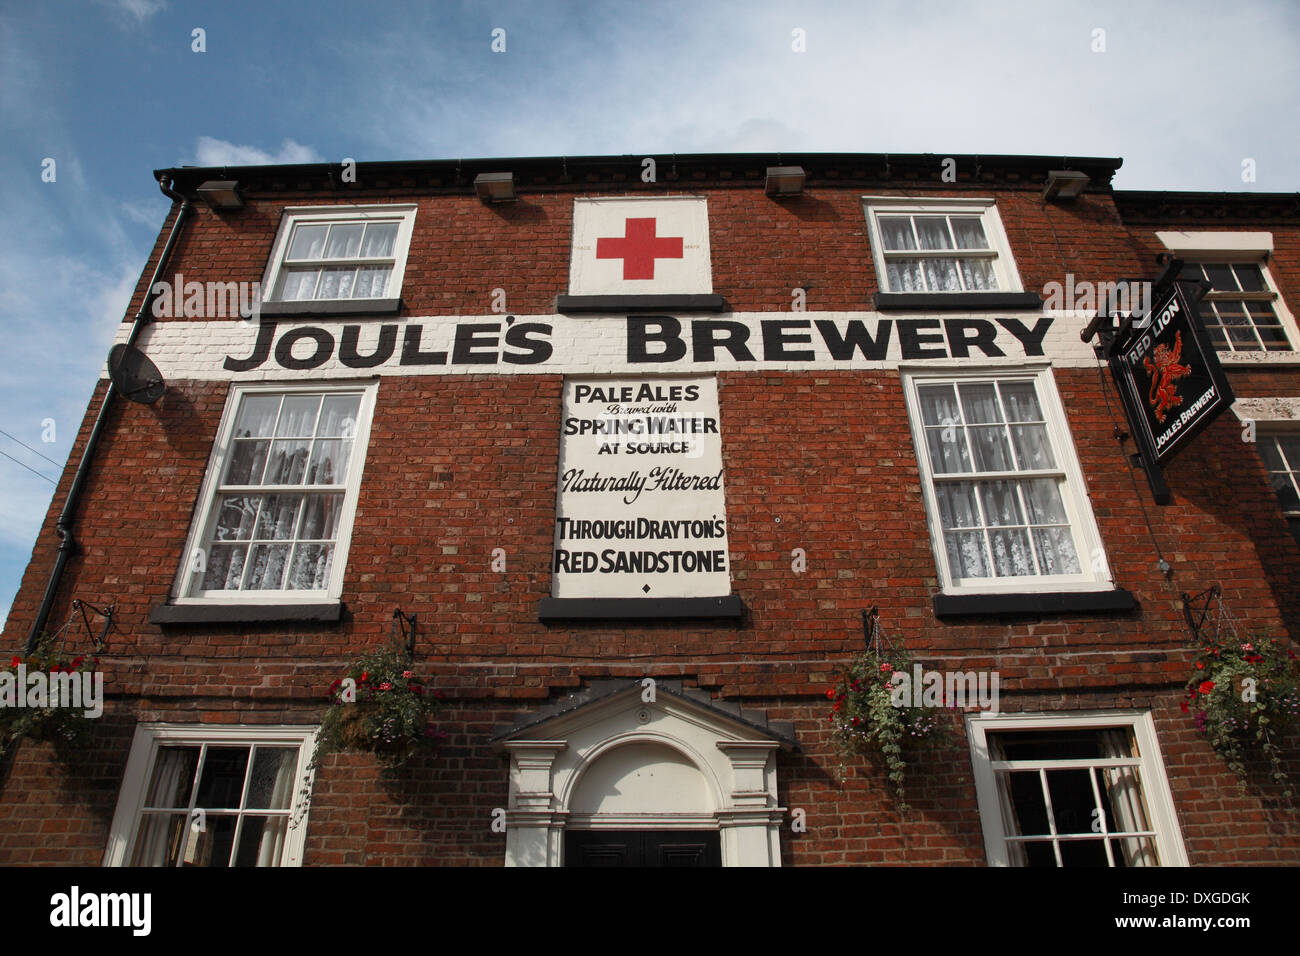 The Red Lion in Market Drayton owned by Joules Brewery, the new brewery being situated above the aquafer behind - Stock Image